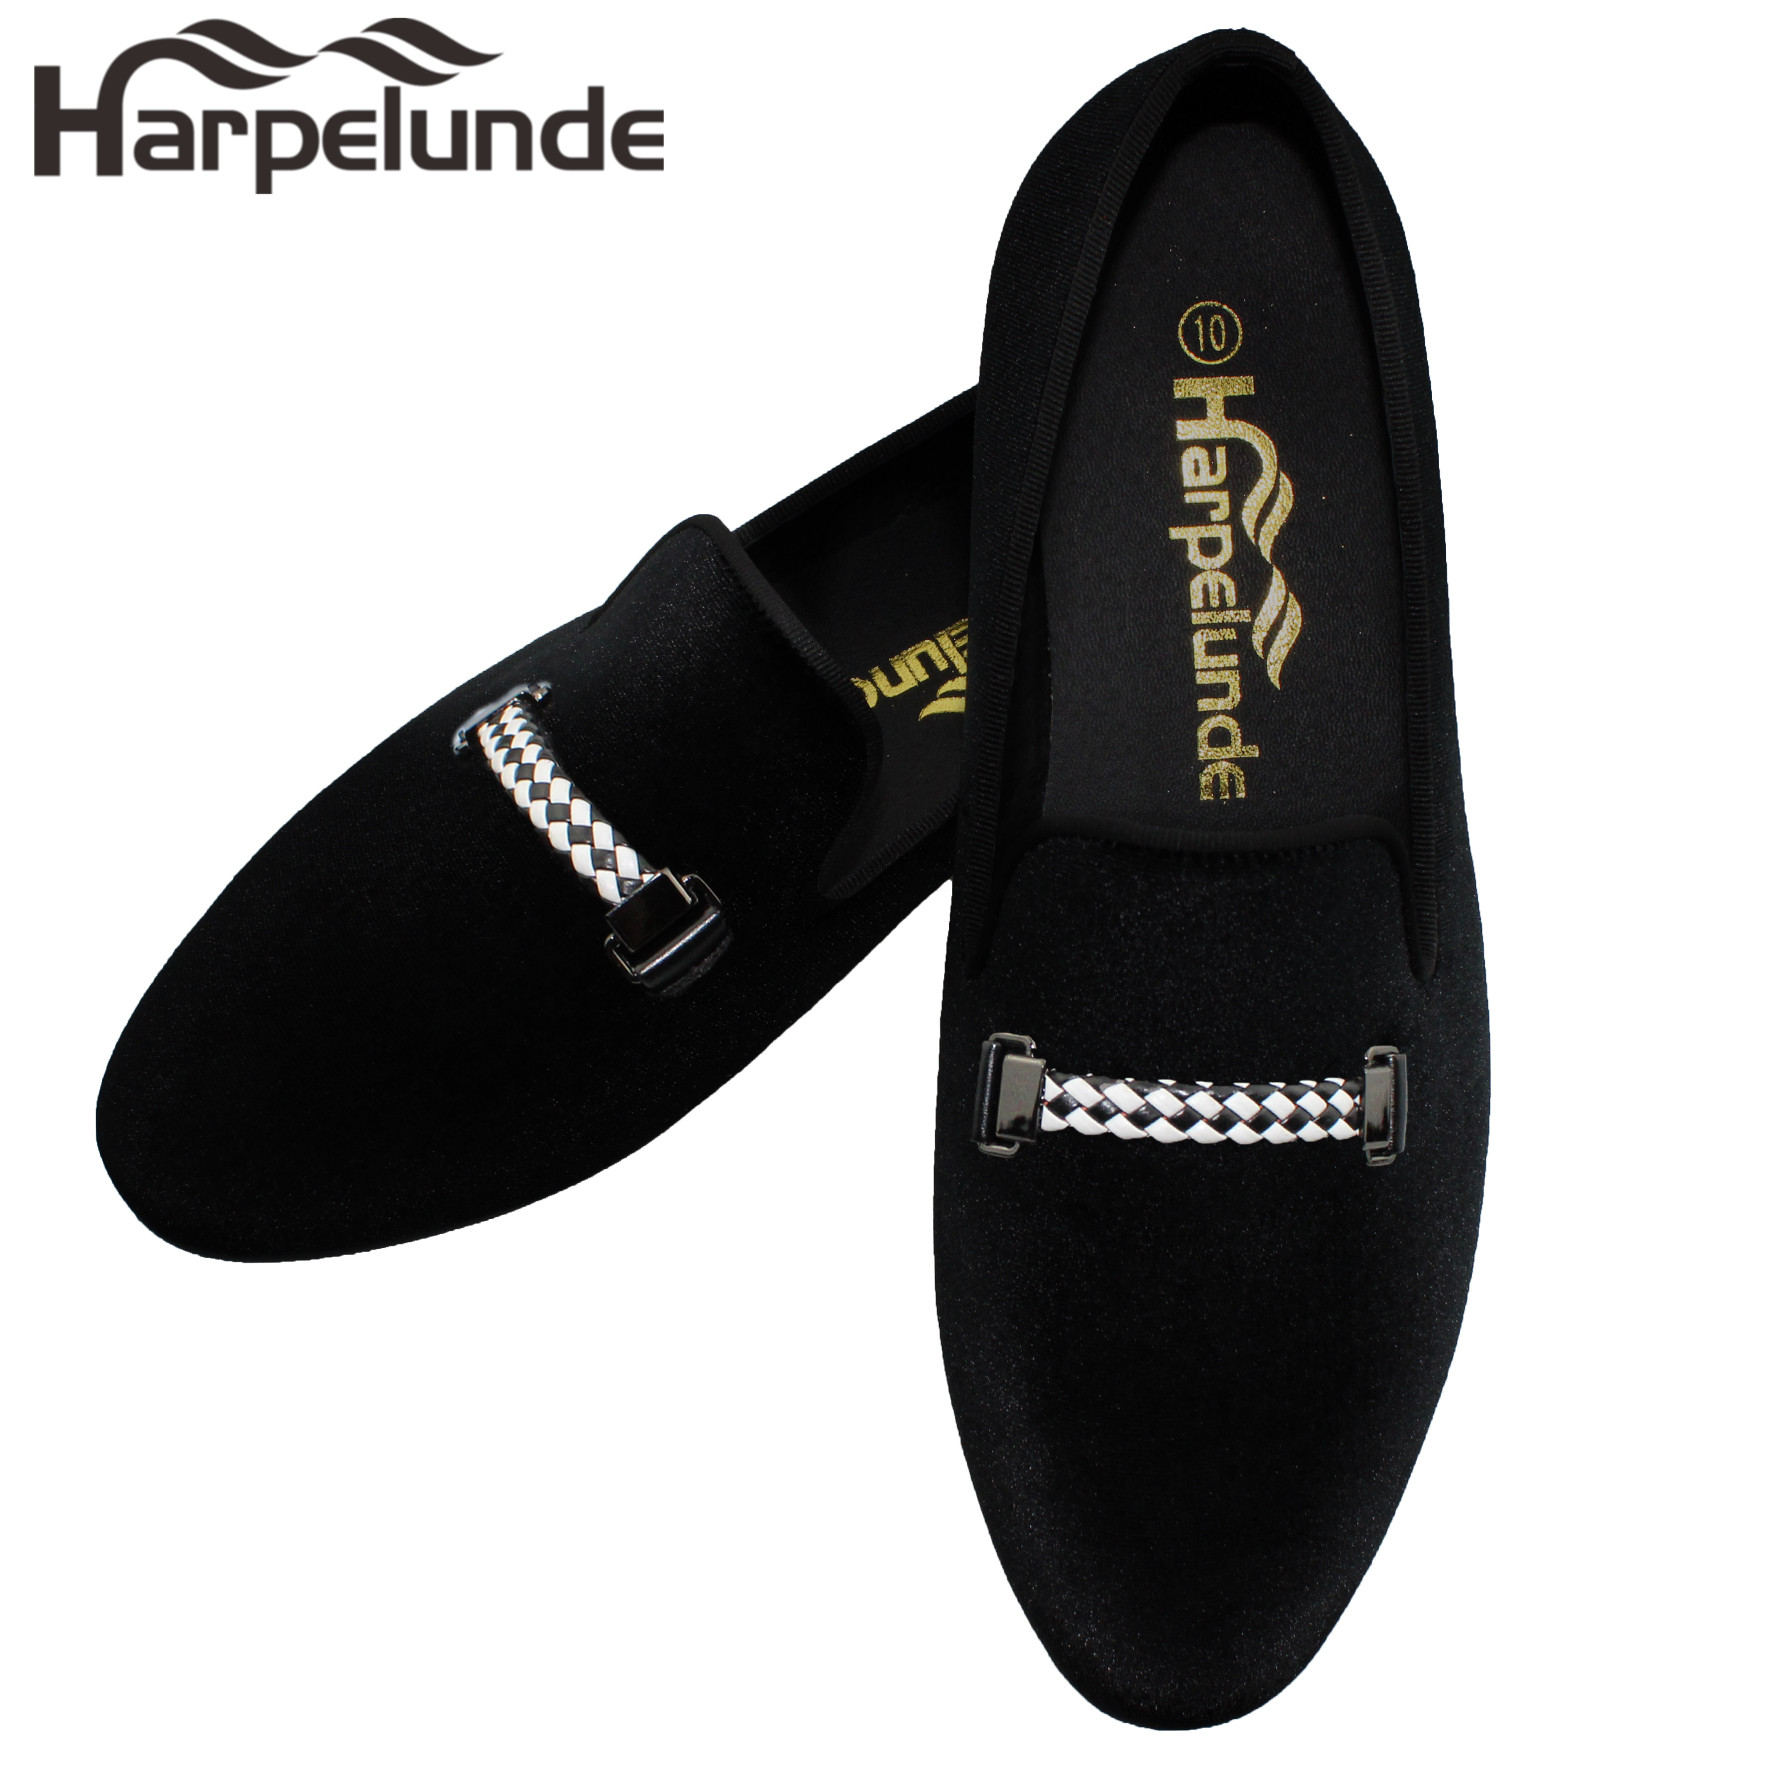 Harpelunde Men Even Shoes Black Dress Velvet Loafers With Woven Buckle